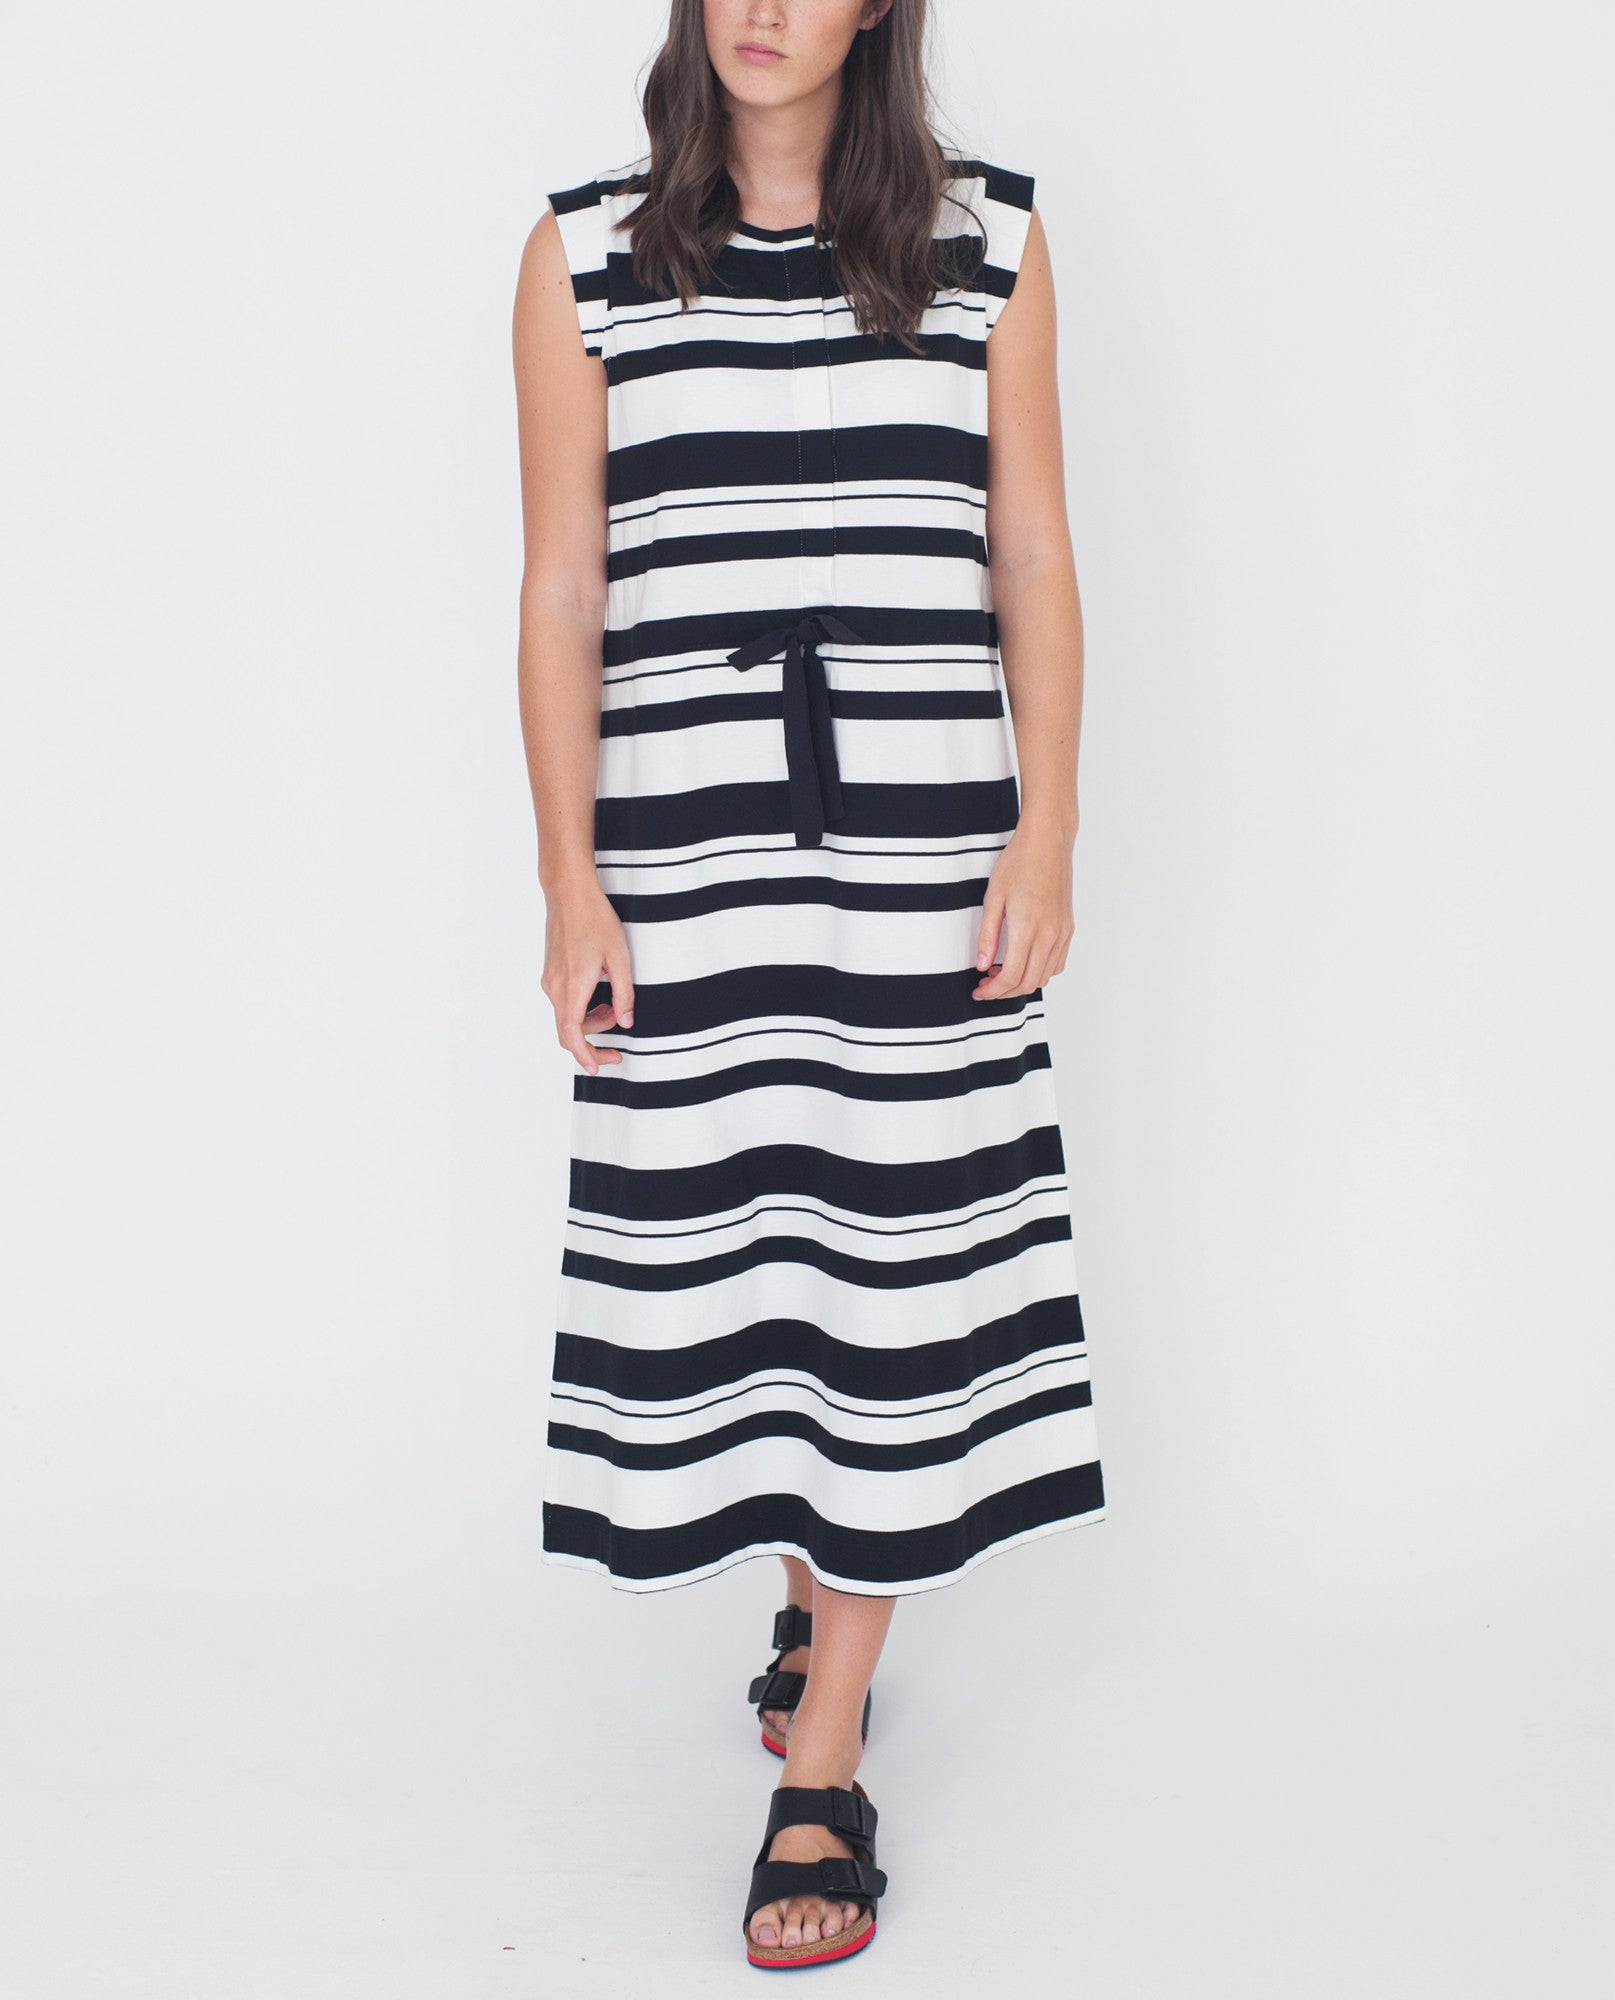 MONA Organic Cotton Dress In Black And Off White from Beaumont Organic